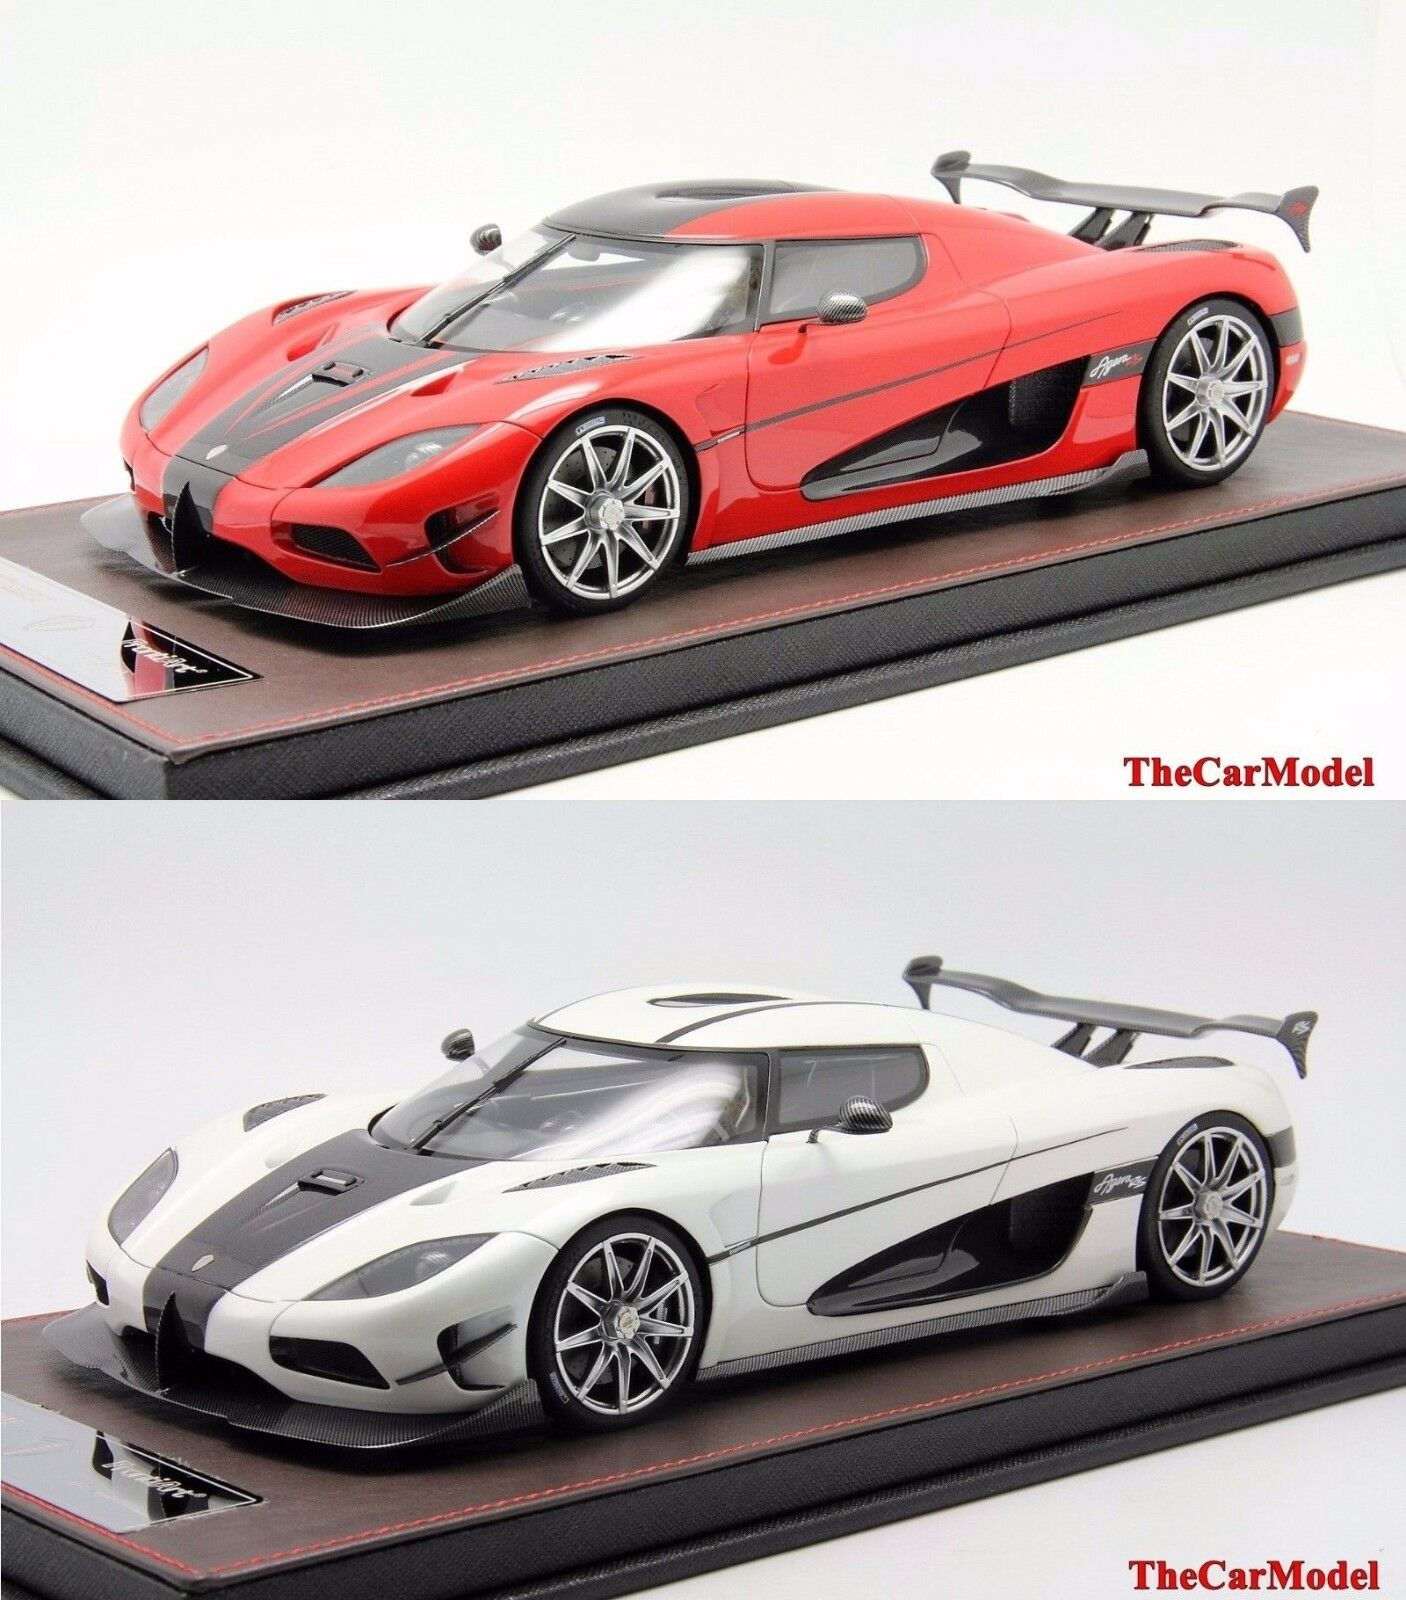 Koenigsegg Agera RS Pearl bianca, rosso Limited 200 pcs FrontiArt 1/18